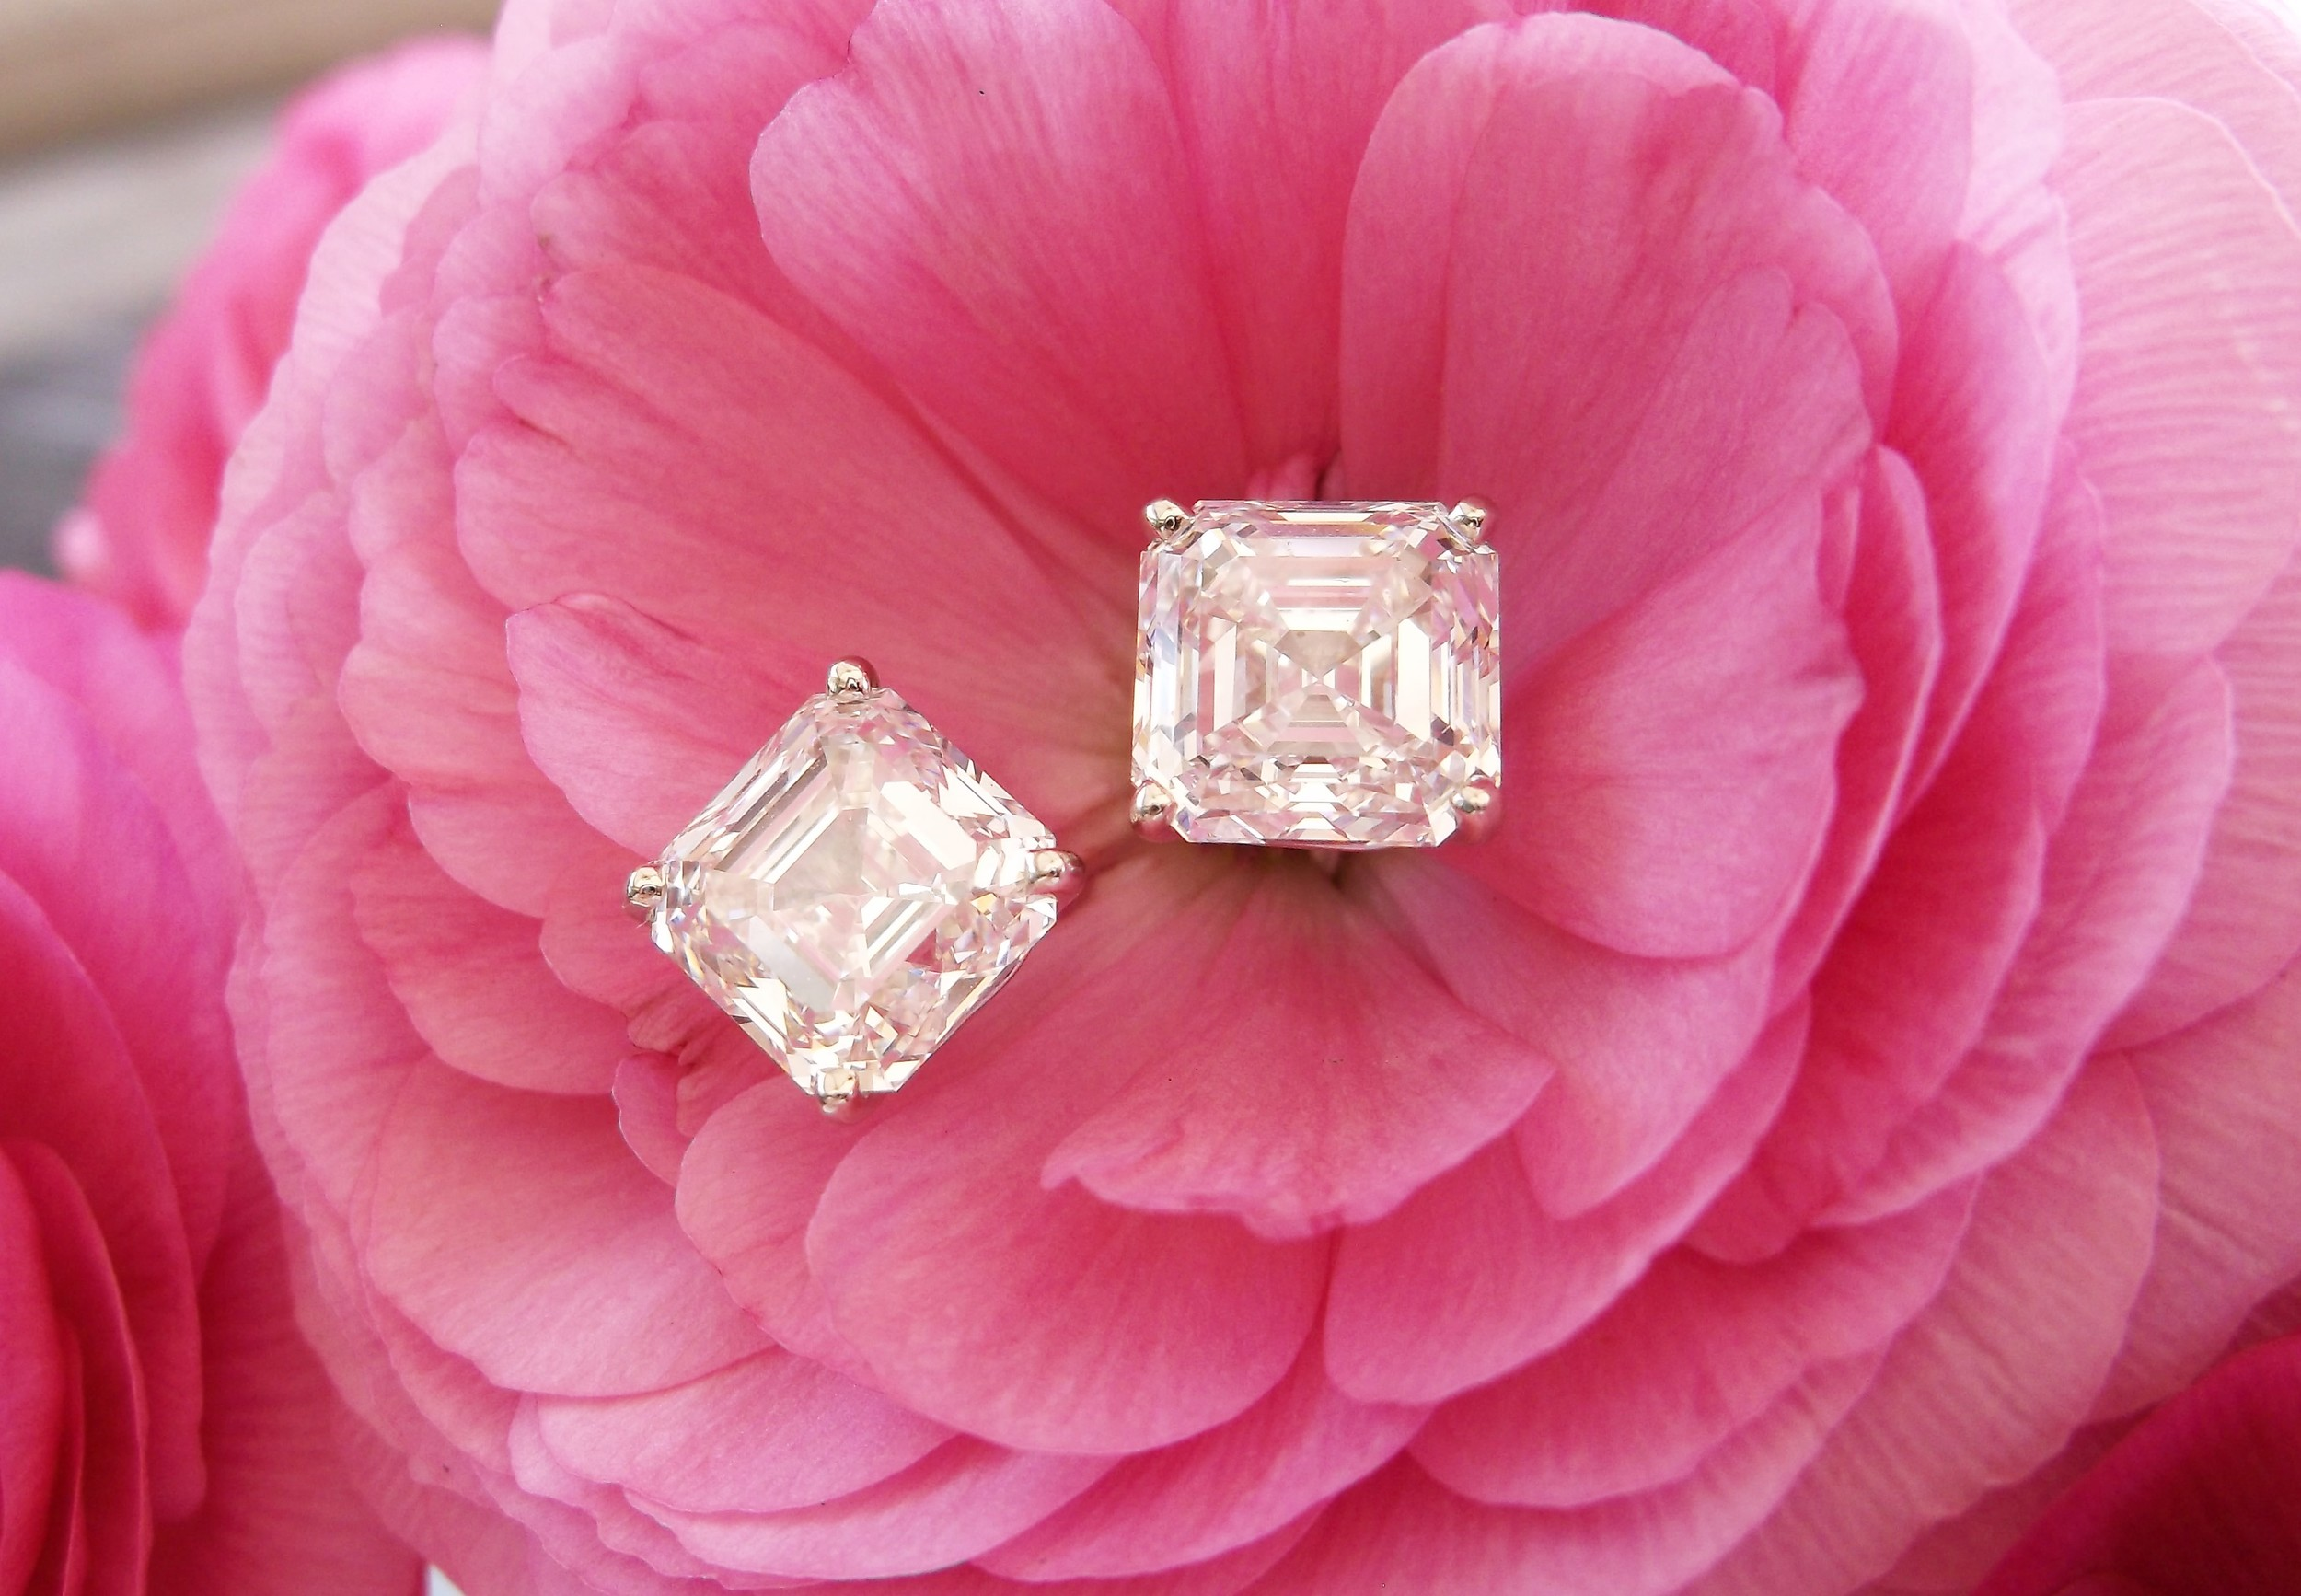 SOLD - The most perfect pair of asscher cut diamond earrings we have ever seen! 3.89 carats in one ear and 4.04 carats in the other!